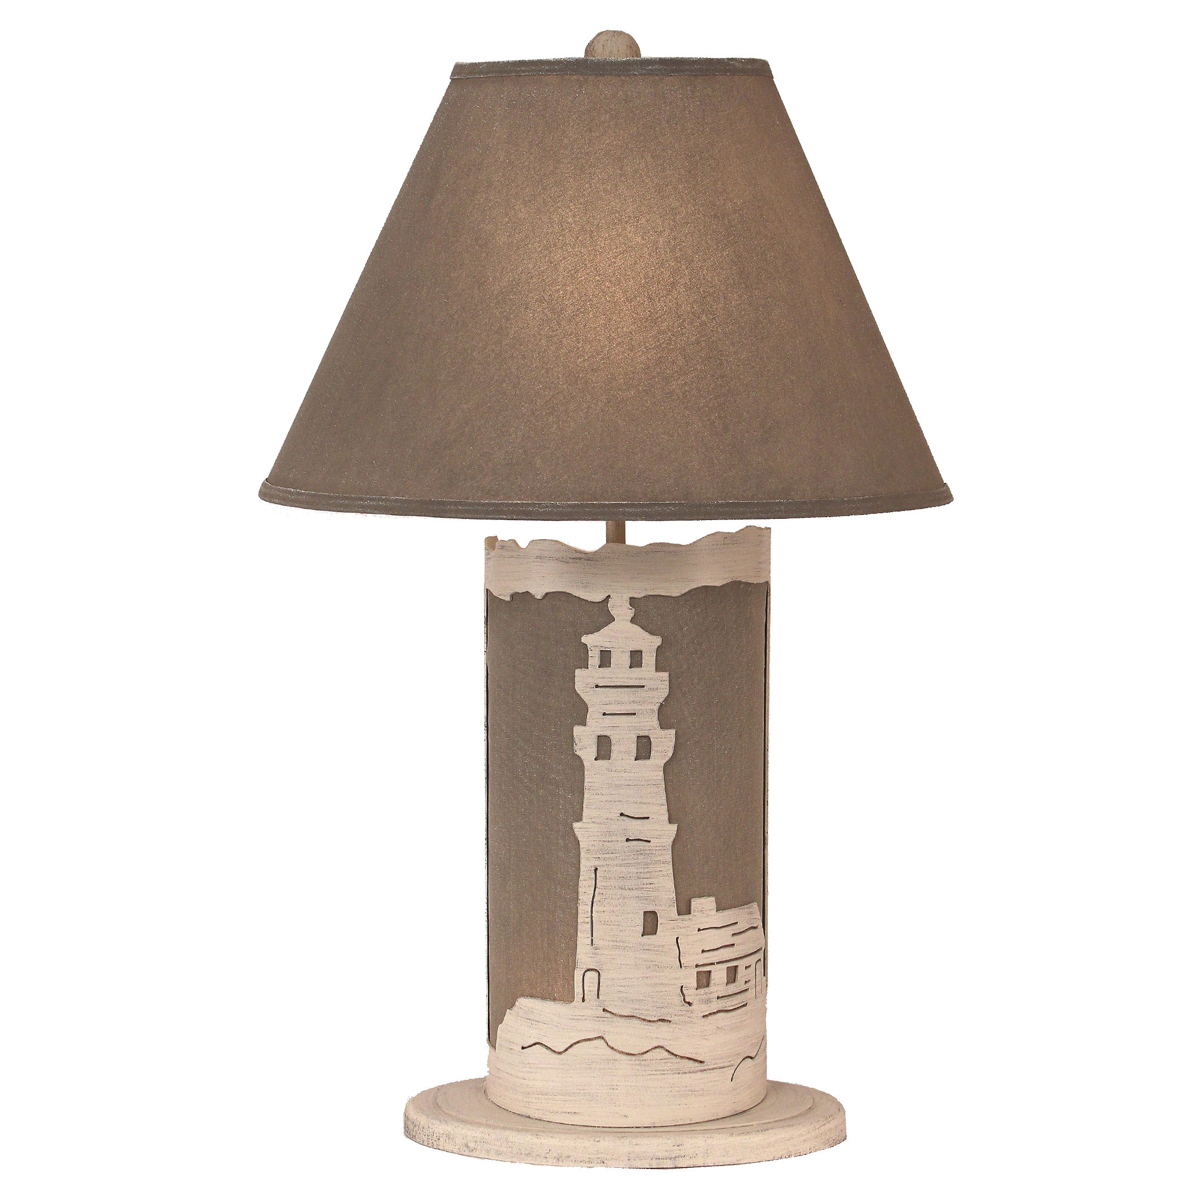 Lighthouse lamp shade lighting compare prices at nextag white lighthouse table lamp with nightlight aloadofball Images